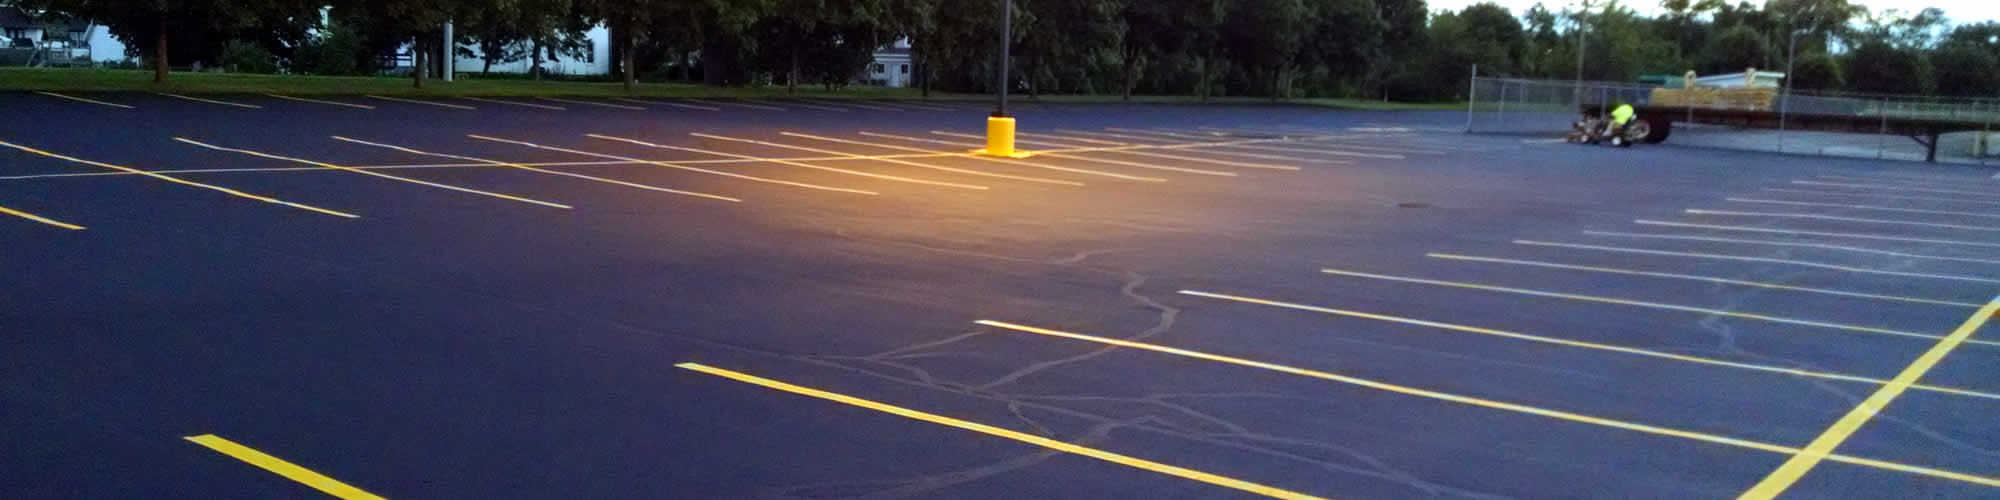 Asphalt Parking Lot Seal Coating Service Company near me